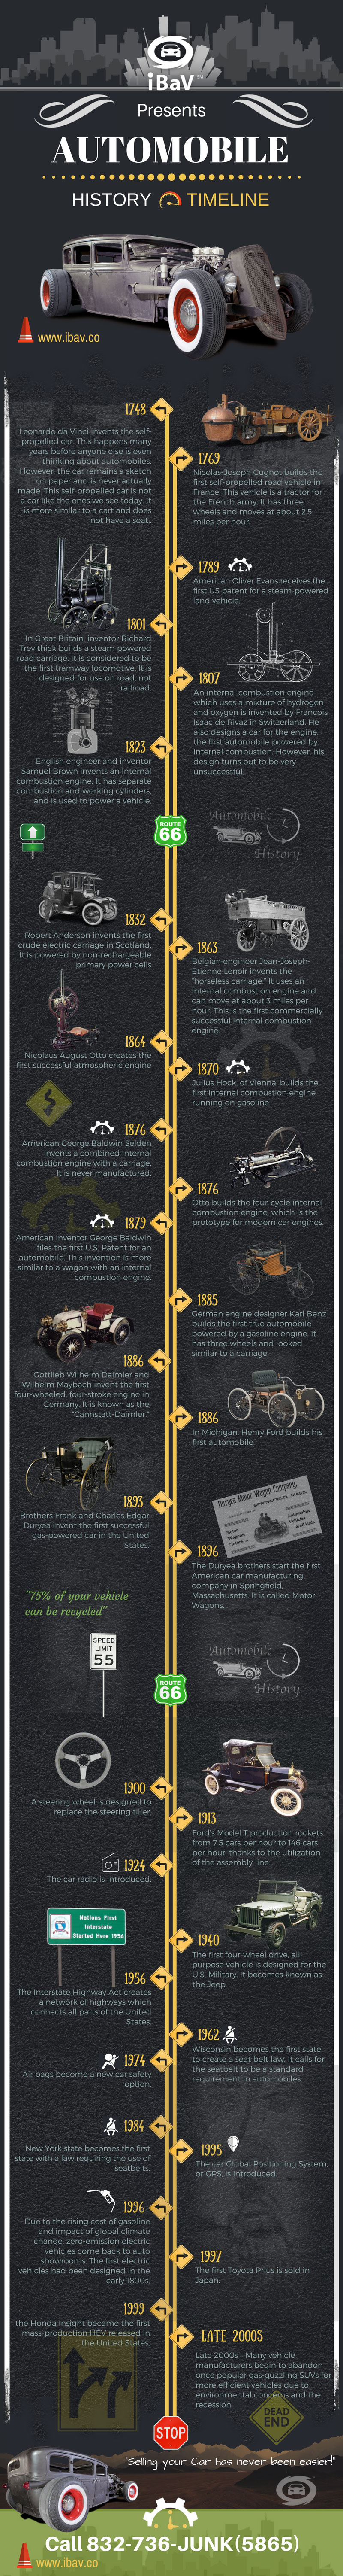 Automobile History Timeline infographic